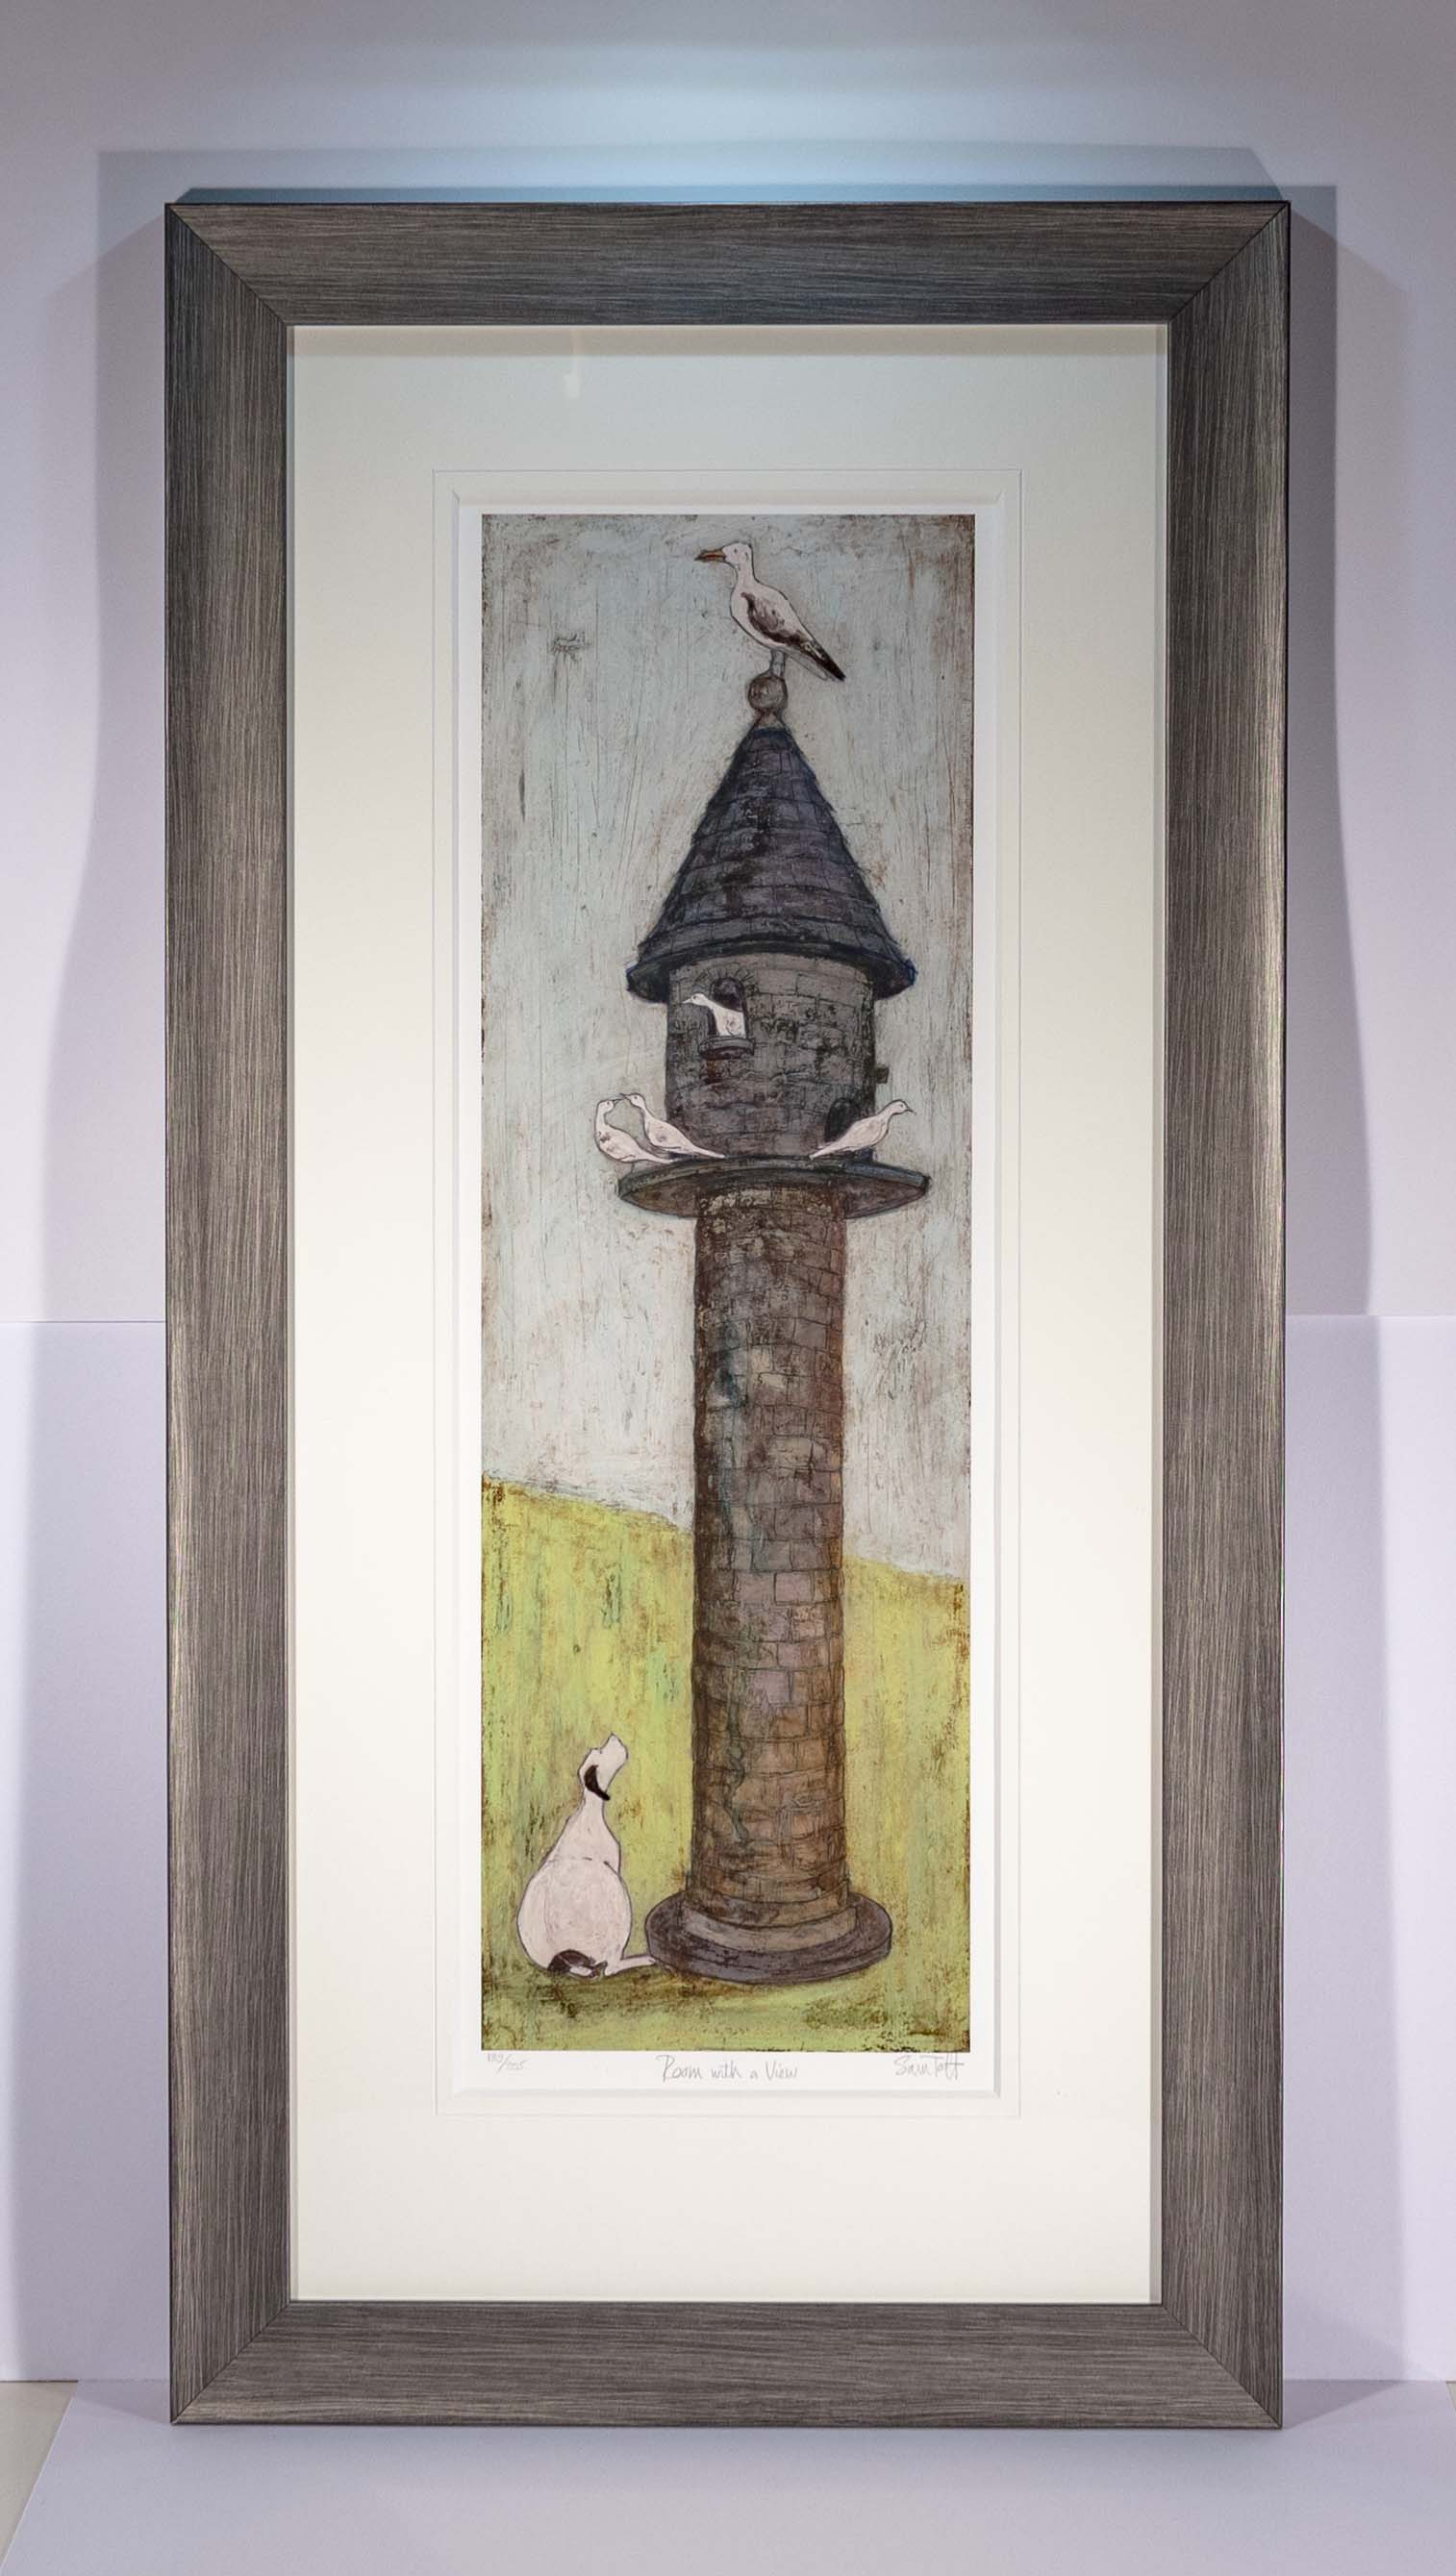 Sam Toft Quot Room With A View Quot Limited Edition Print With